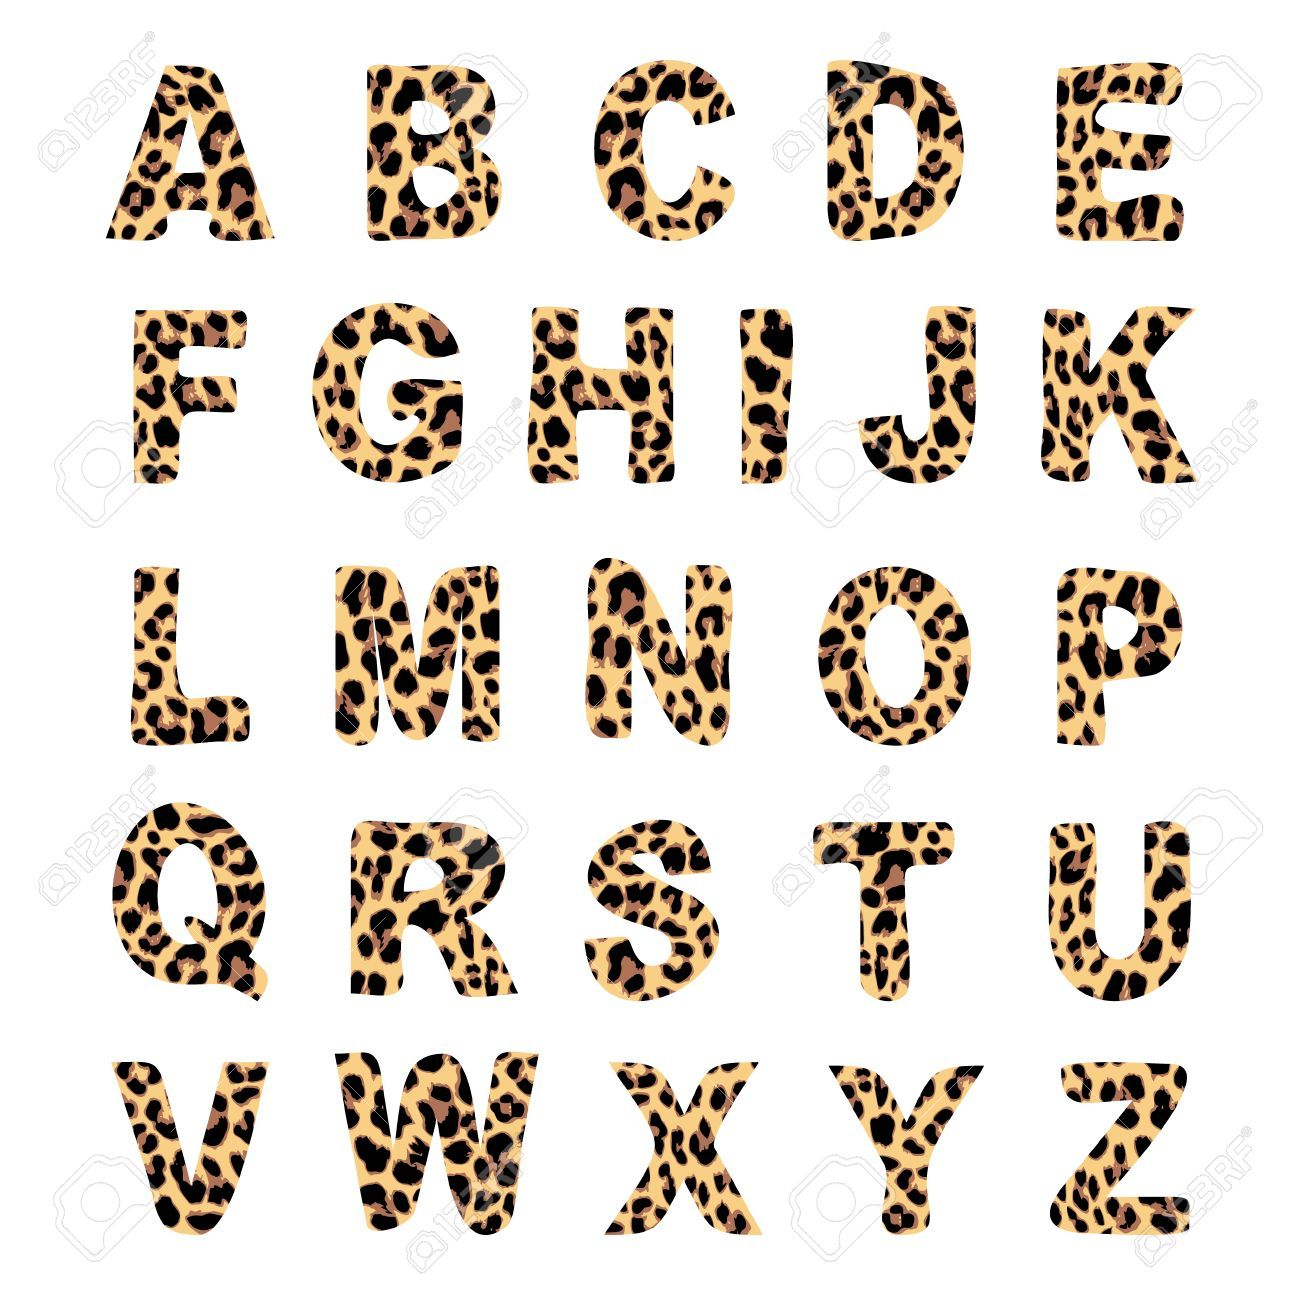 Trendy Alphabet Set, Leopard Pattern Design, Vector